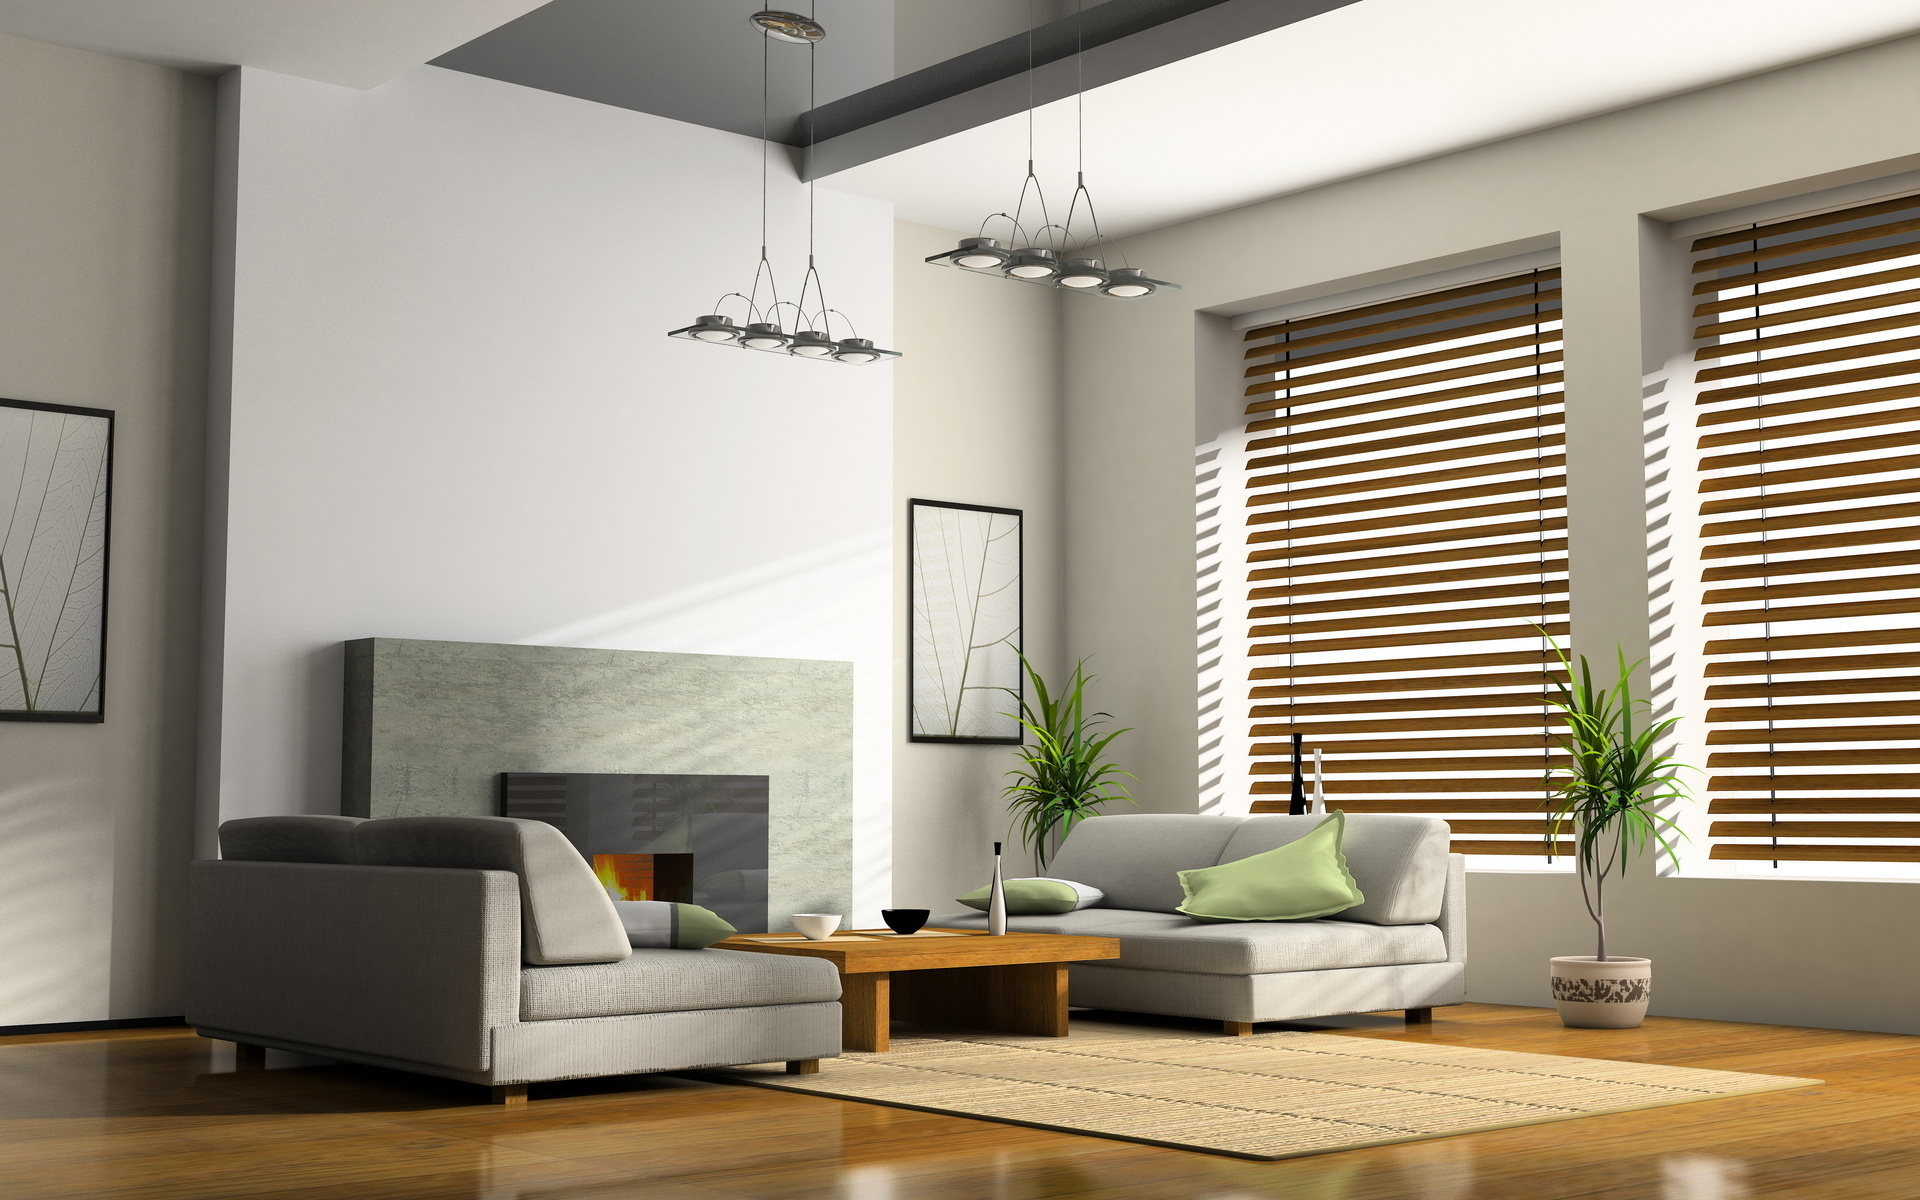 3d interior design desktop wallpaper 60899 1920x1200 px for Interior wallpaper